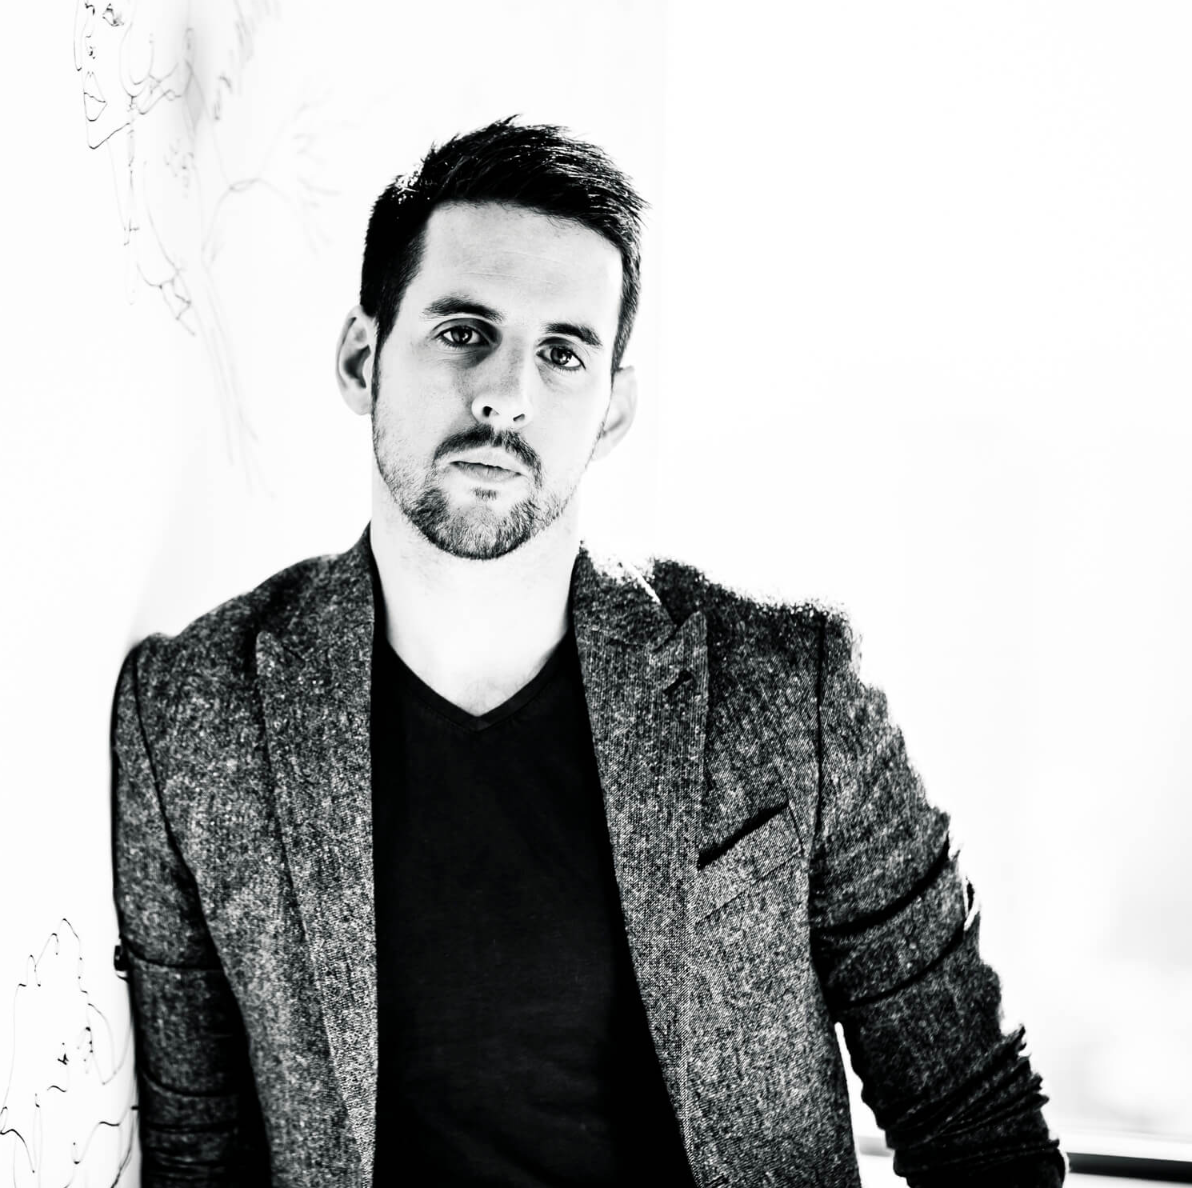 Headshots and portrait photographer